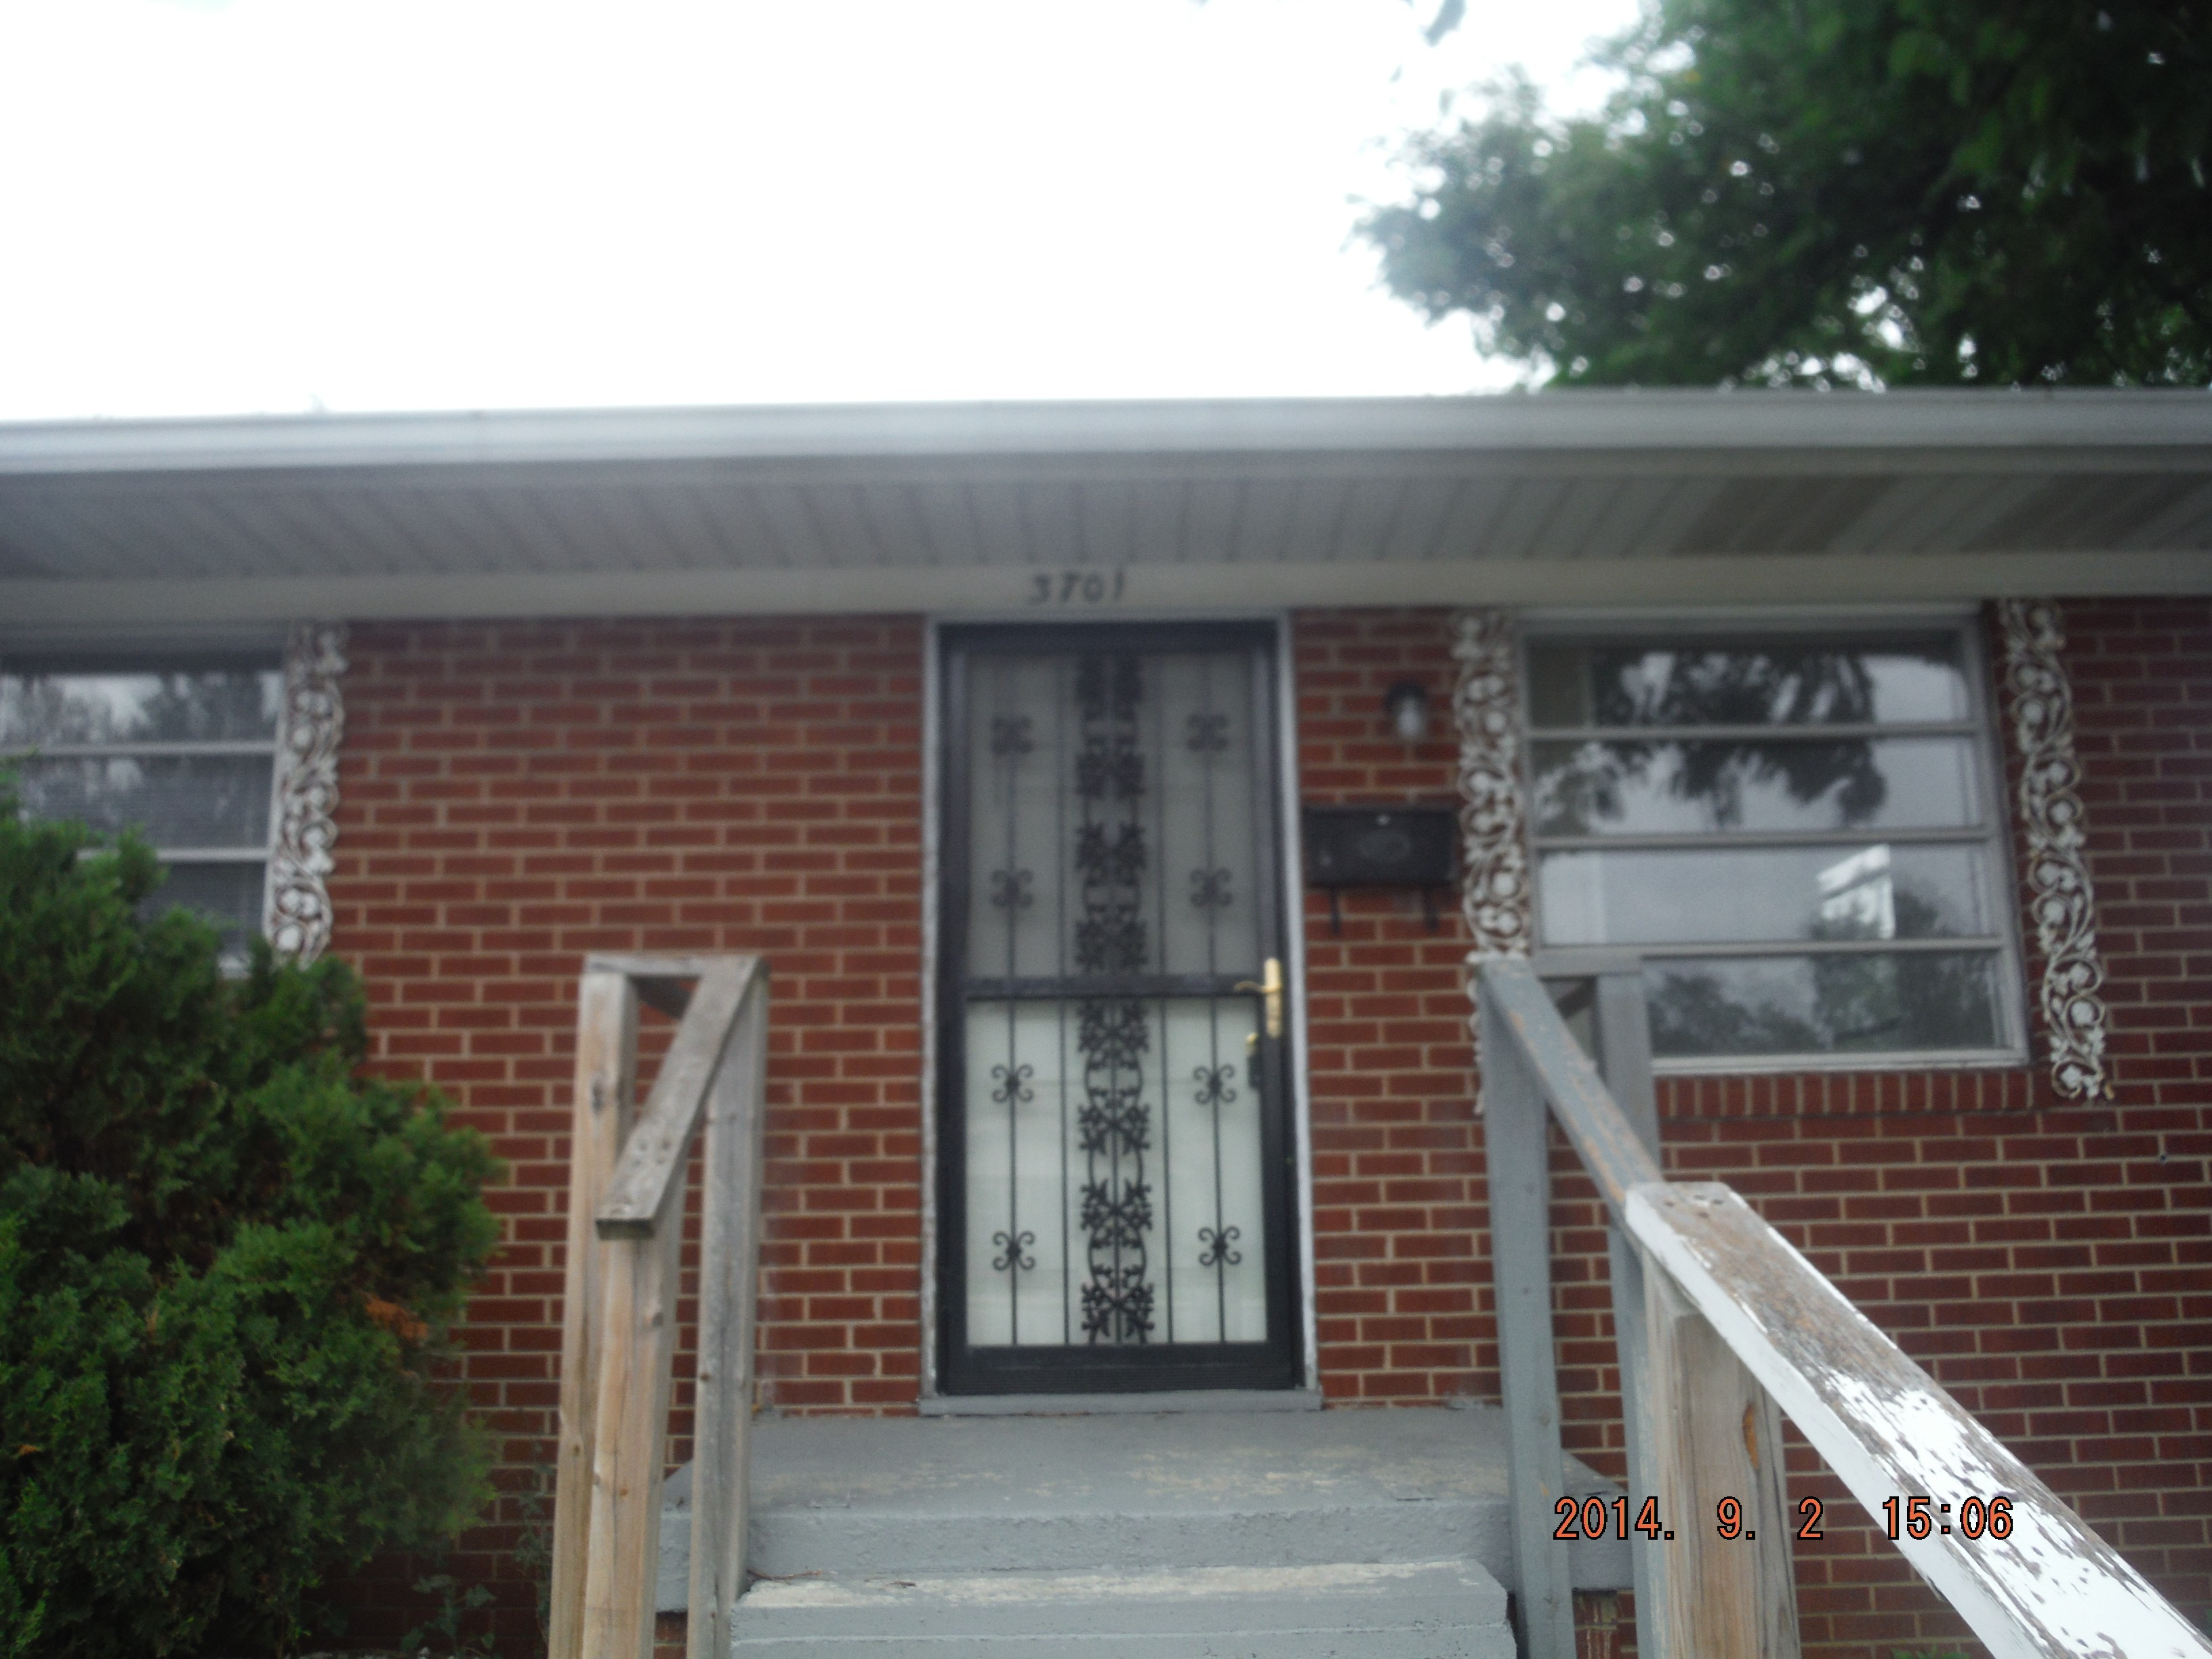 3701 N Emerson Ave Indianapolis In 46218 2 Bedroom Apartment For Rent For 575 Month Zumper